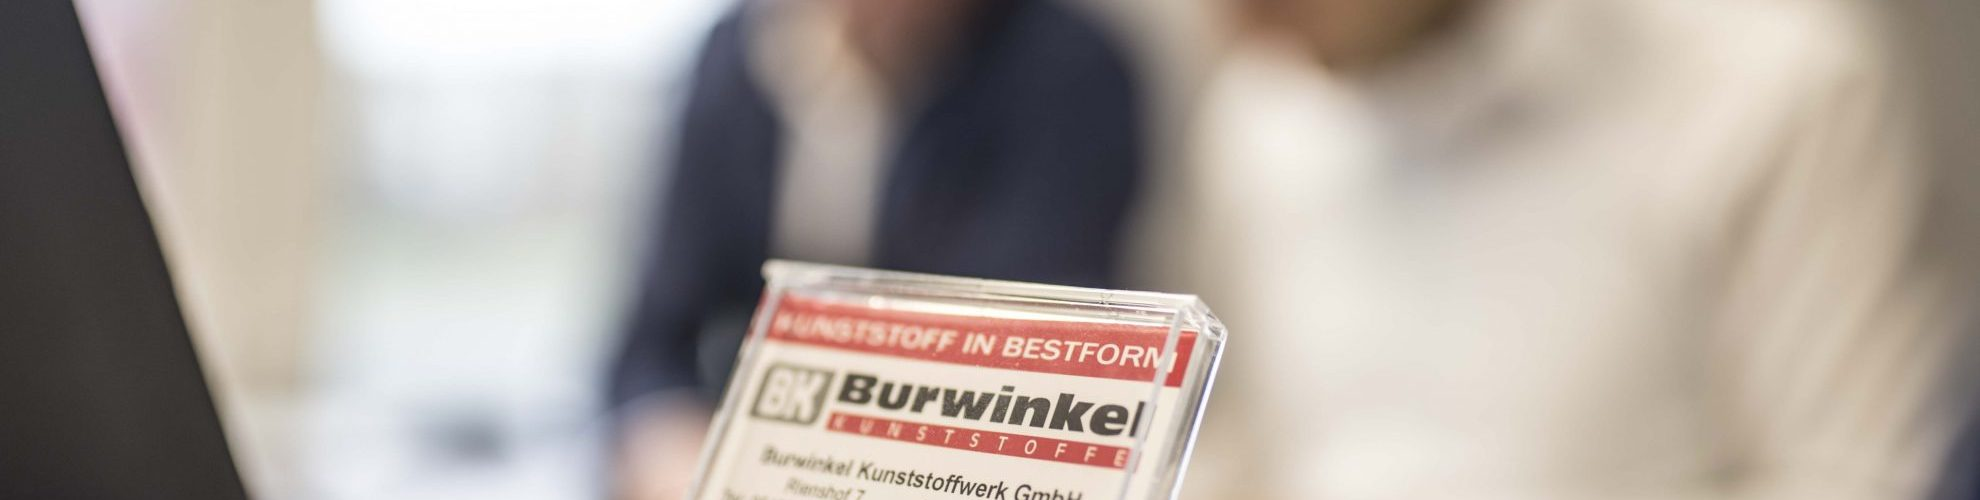 Burwinkel news